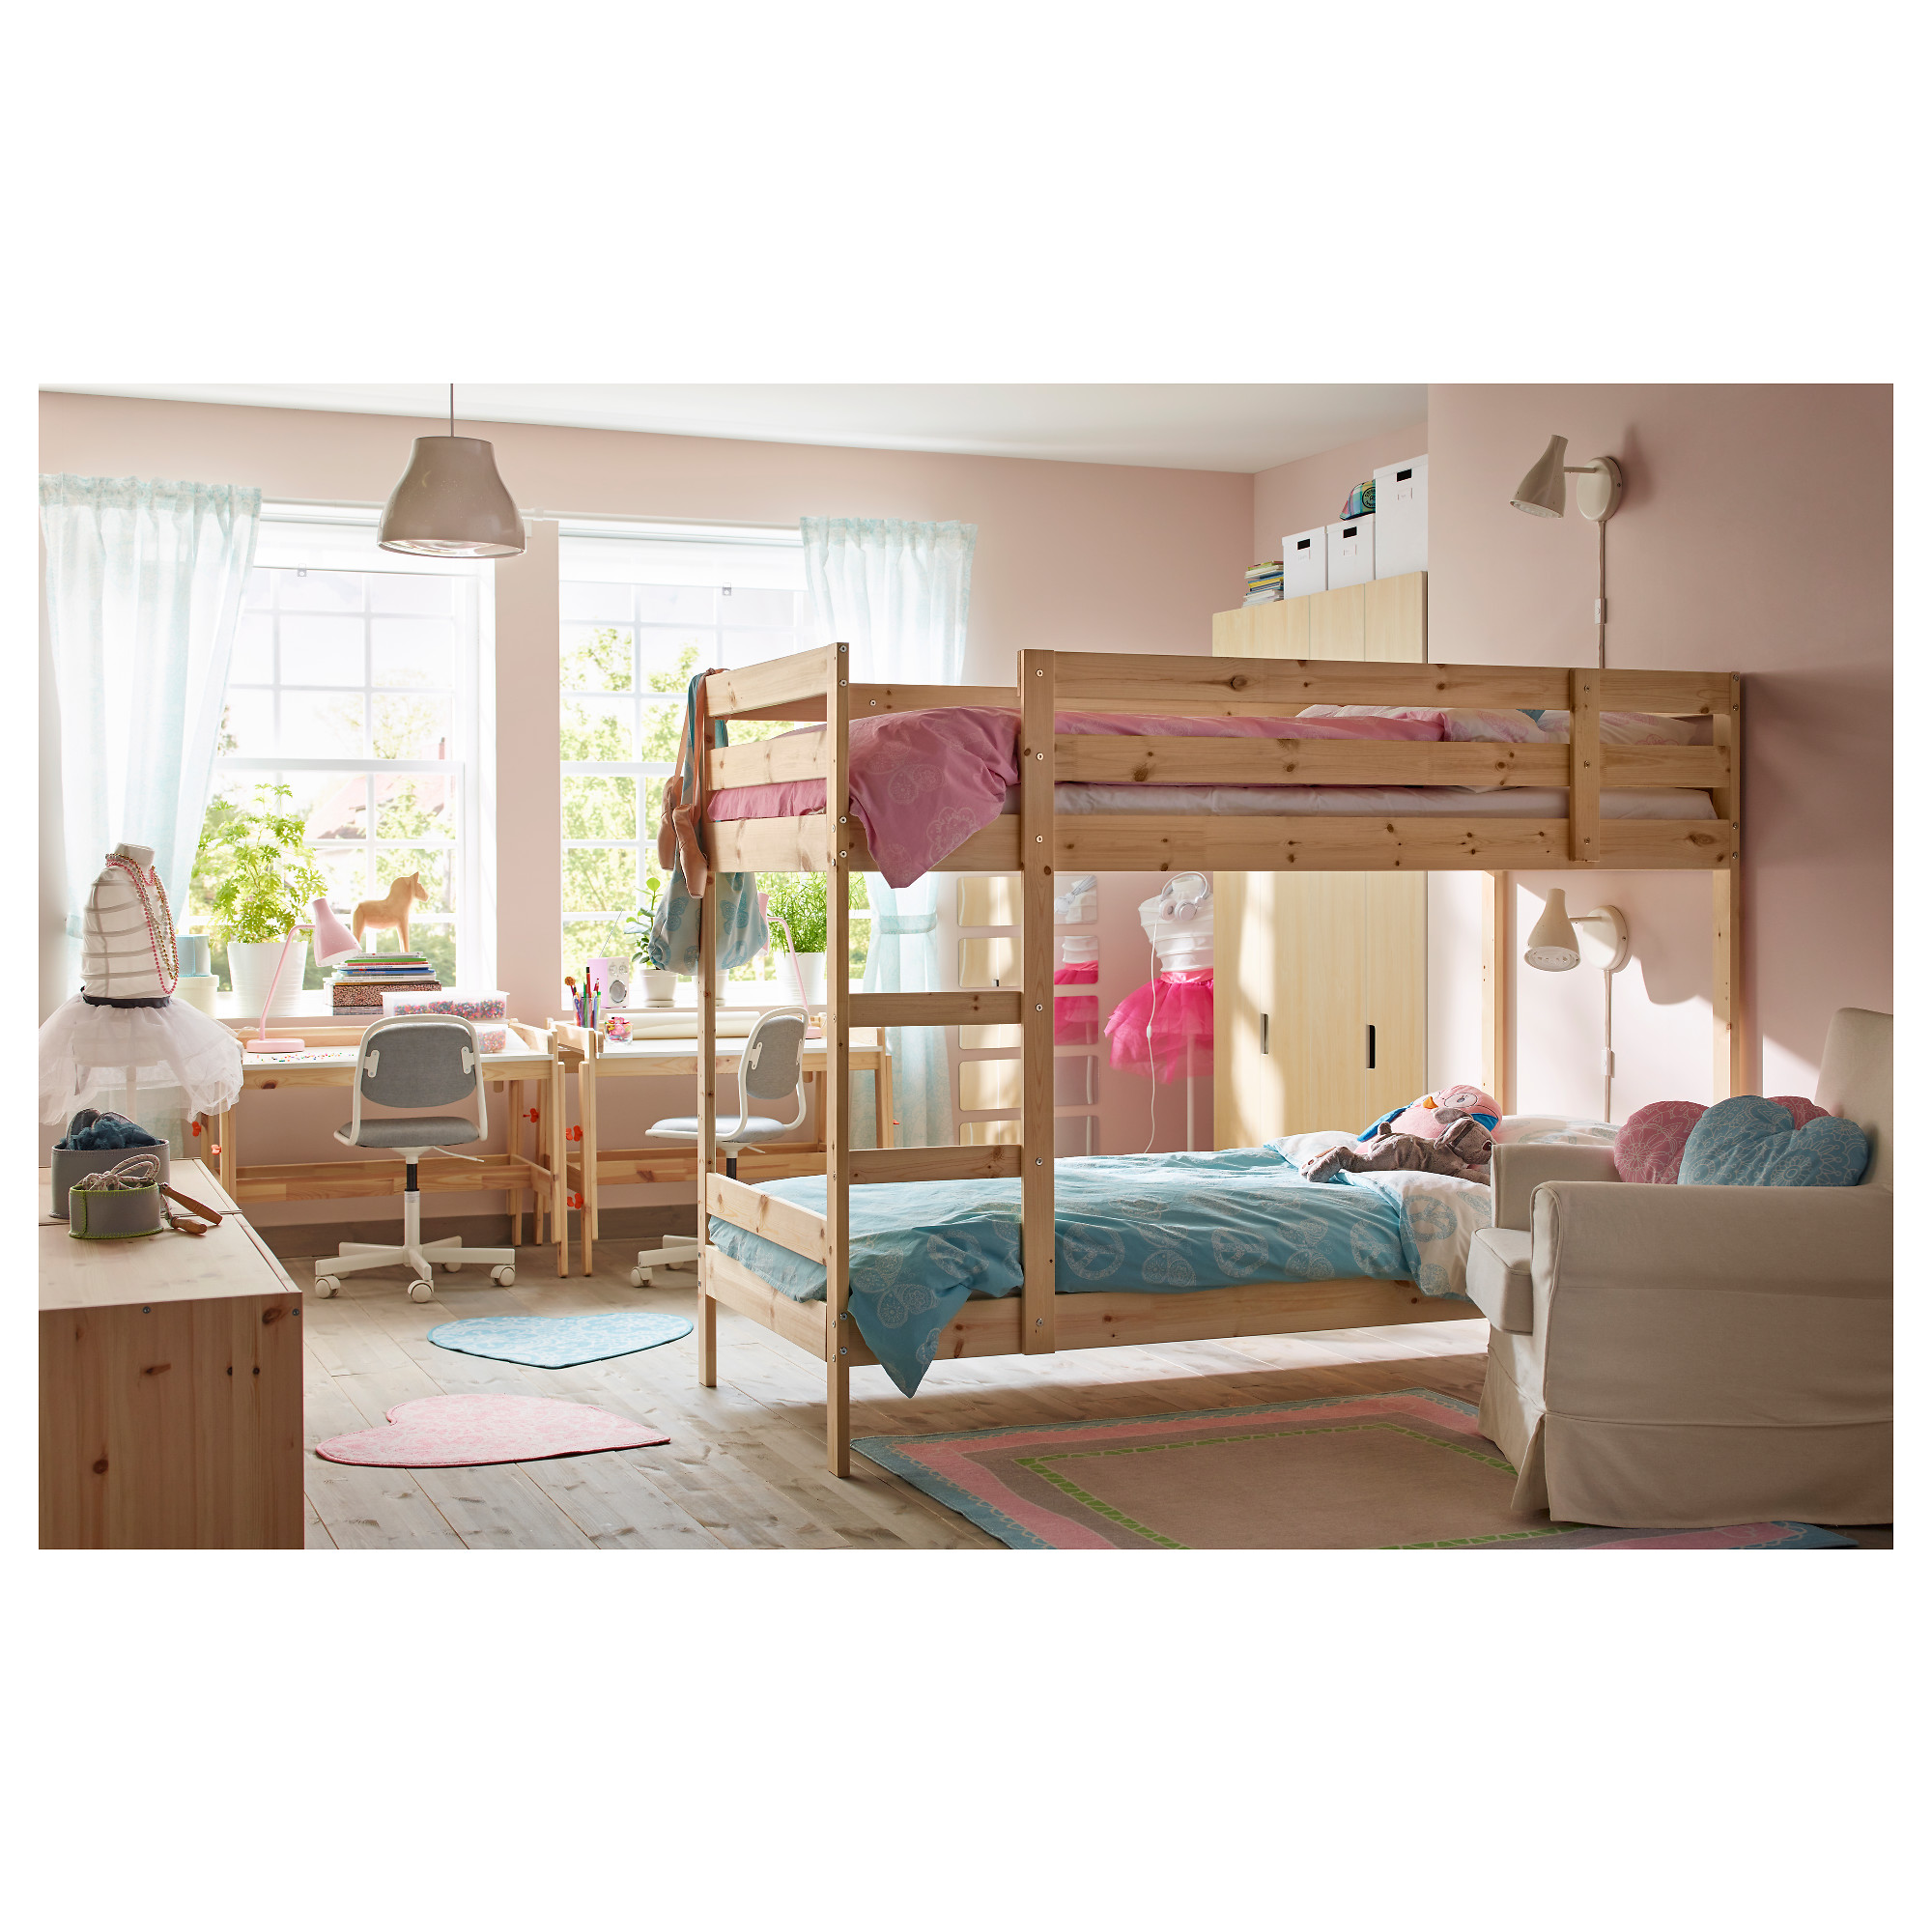 shaped features longer bunk space accommodated beds due bed is the others with unit this than ceiling to a quite being top low saving staircase l wooden